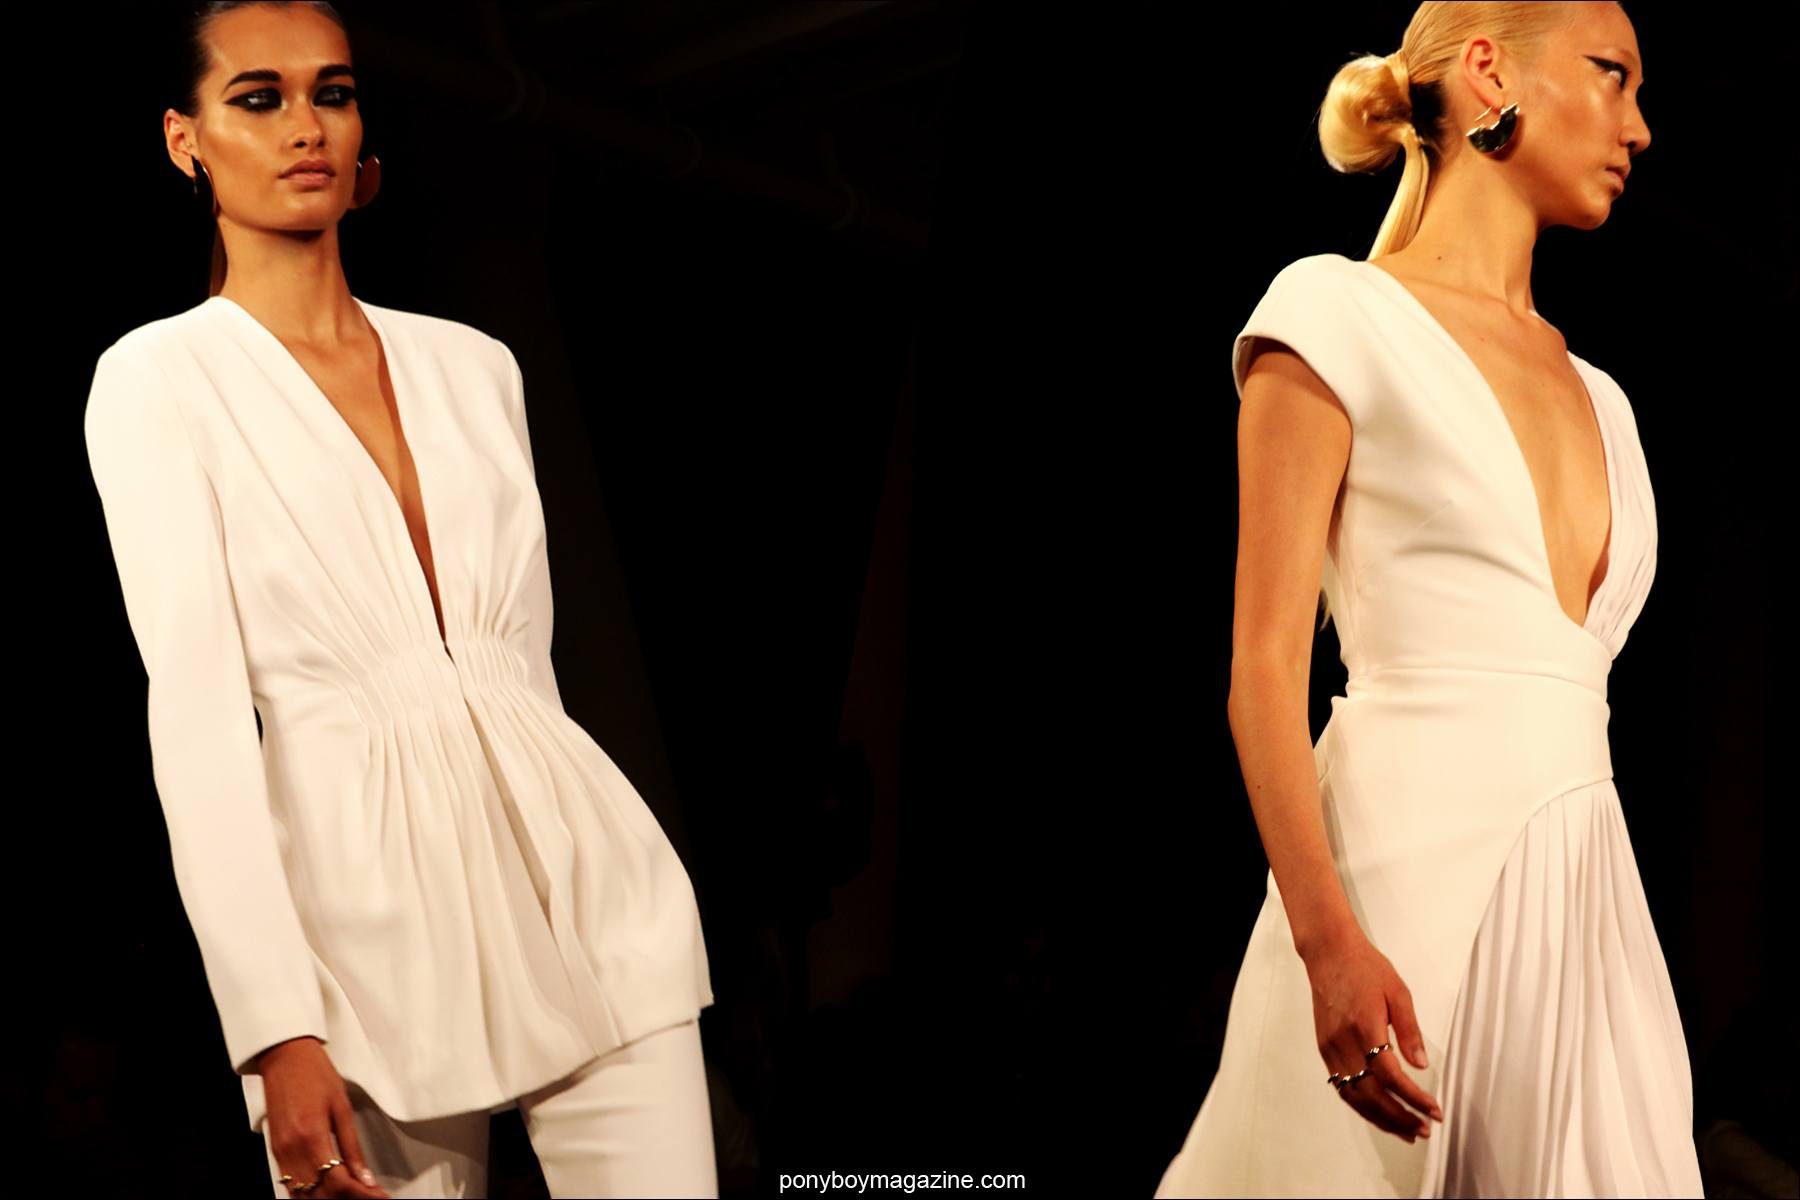 Models in white Cushie et Ochs S/S15 creations. Photographed at Milk Studios NY by Alexander Thompson for Ponyboy Magazine.